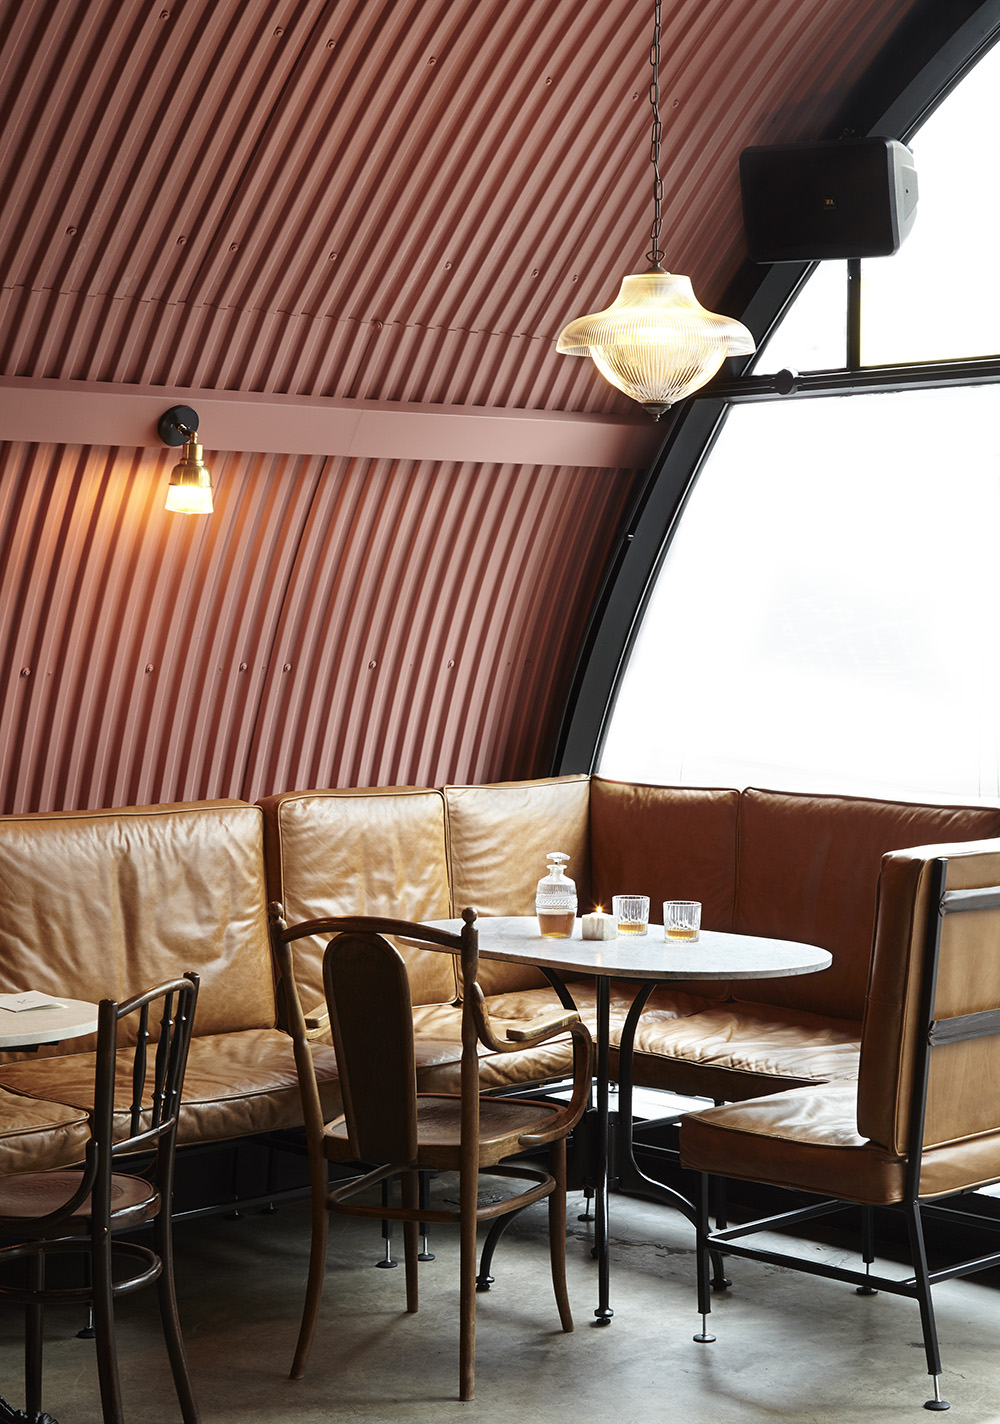 kricket-Brixton-restaurant-bar-cool-london-run-for-the-hills.jpg